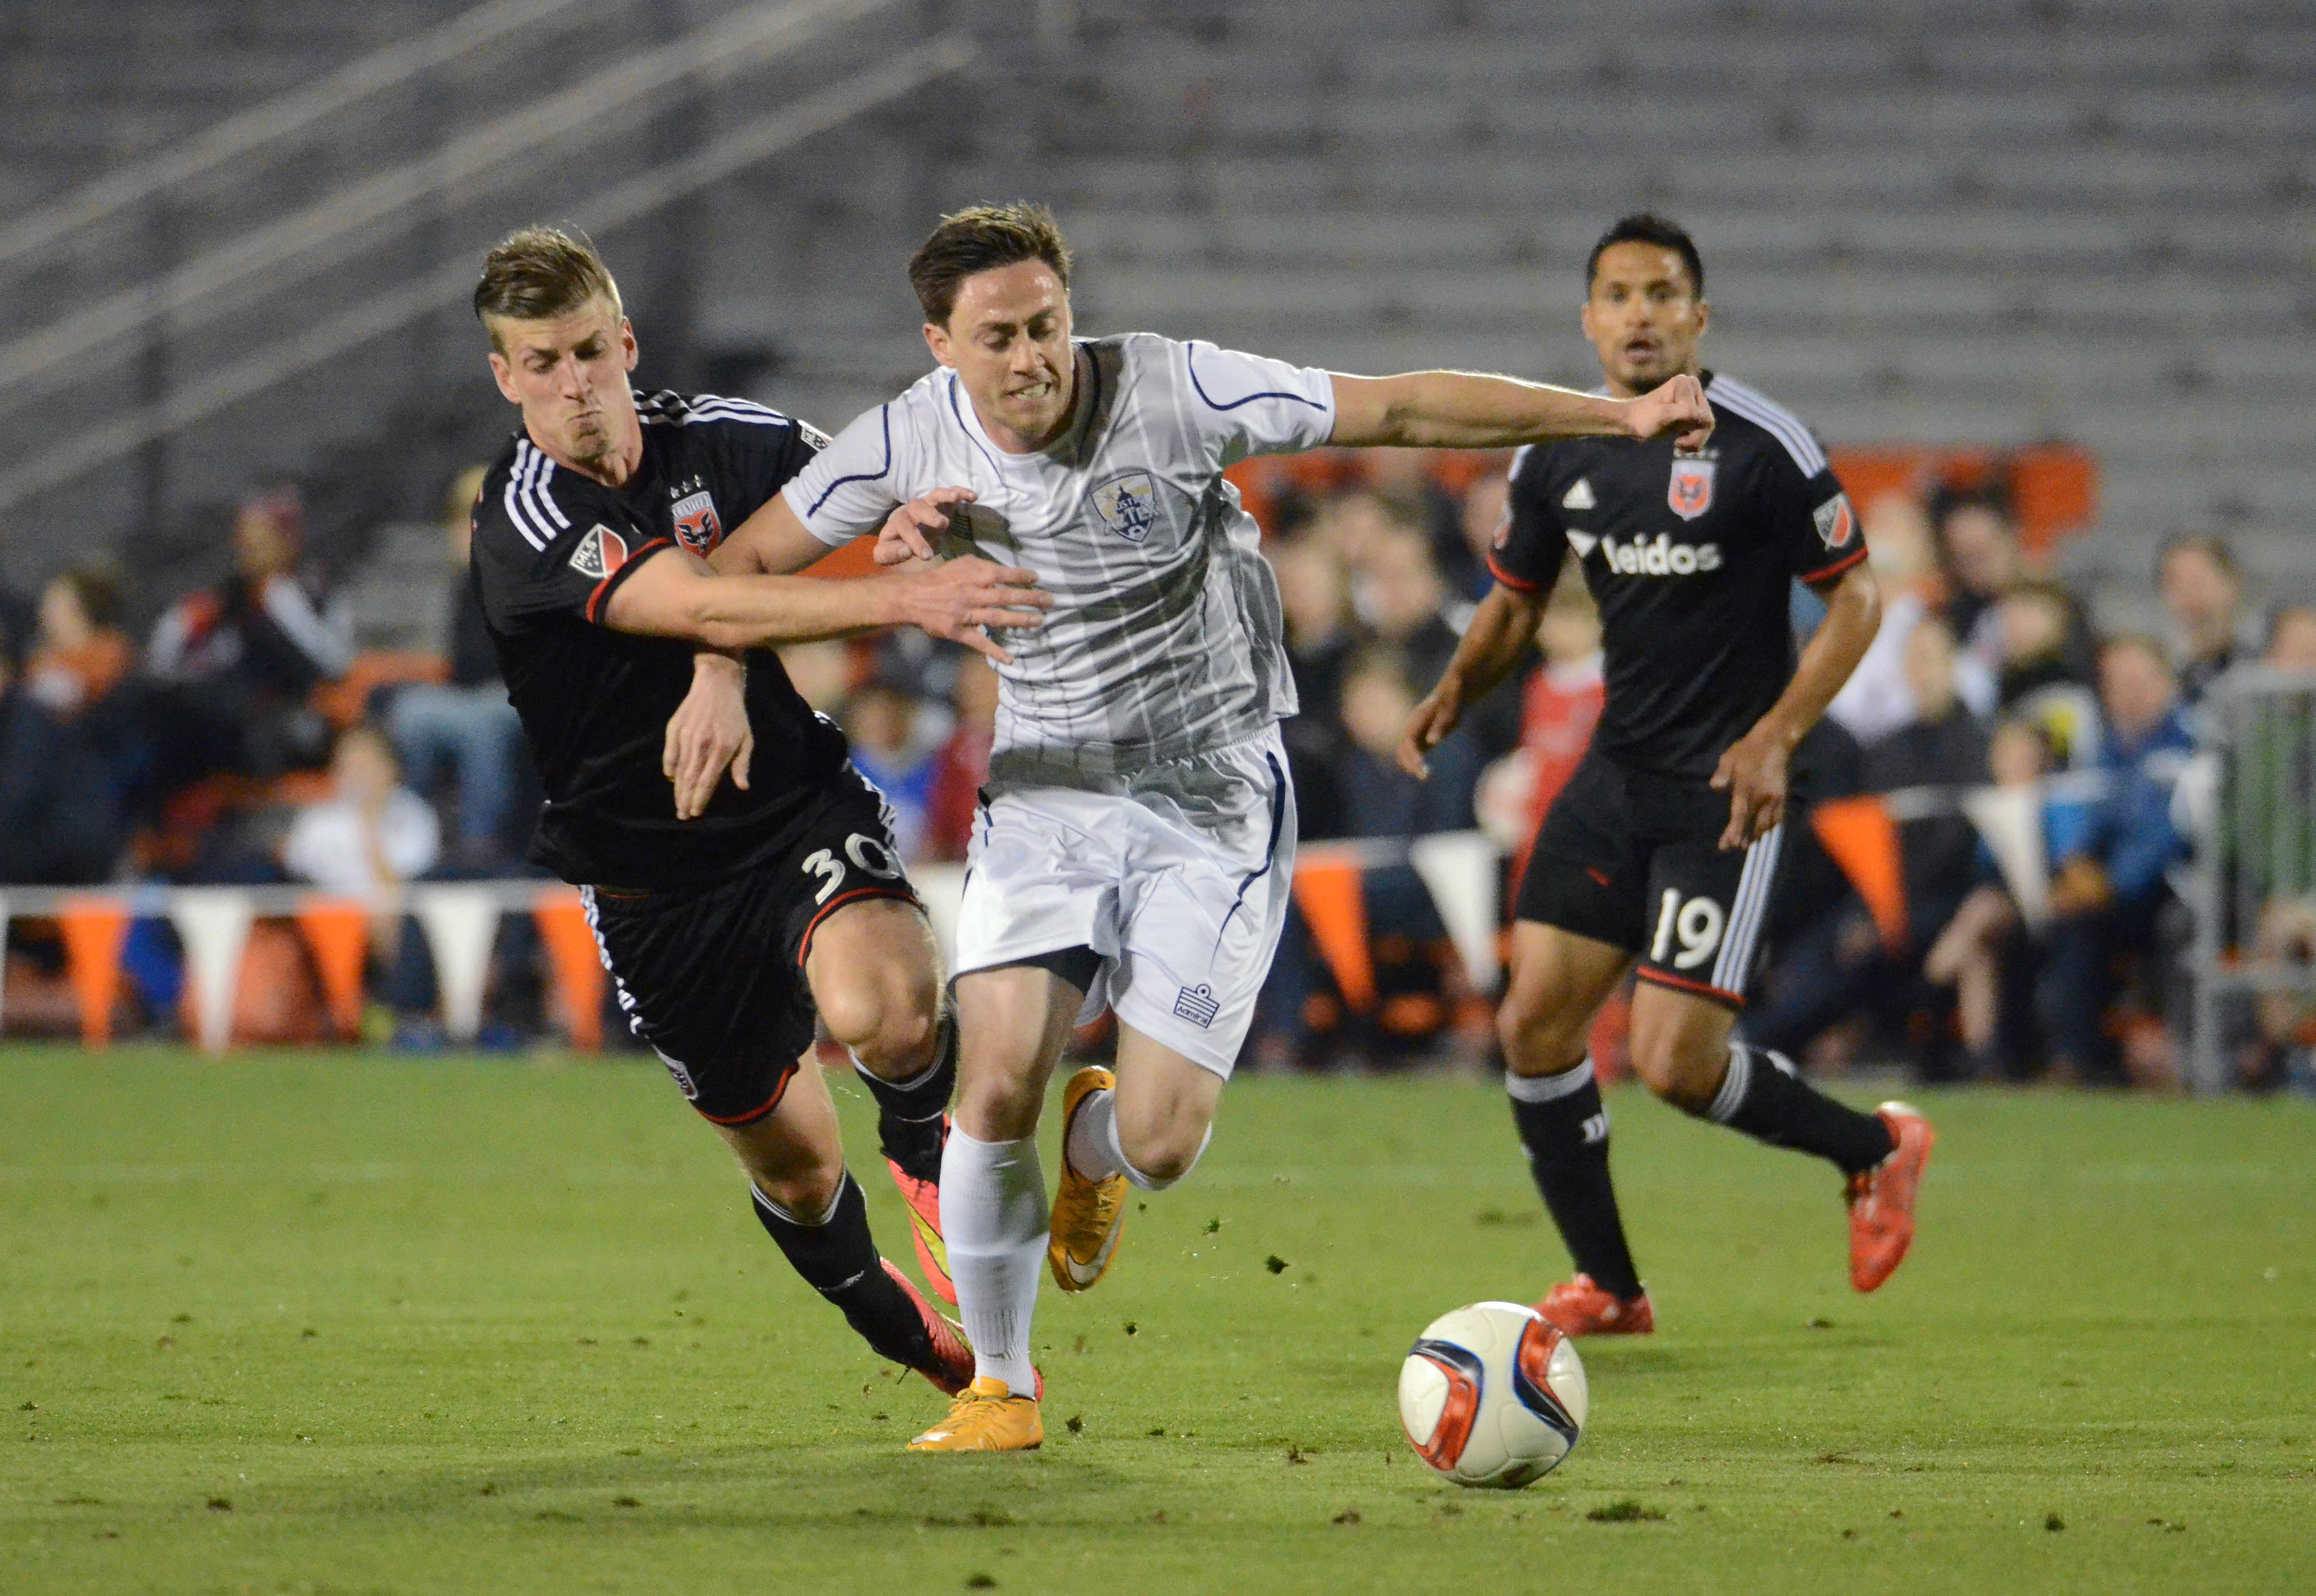 Feb 13, 2015; Austin, TX, USA; DC United forward Conor Doyle (30) fights for possession against Austin Aztex midfielder Brendan King (right) during the first half at Mike A. Myers Stadium. Mandatory Credit: Brendan Maloney-USA TODAY Sports